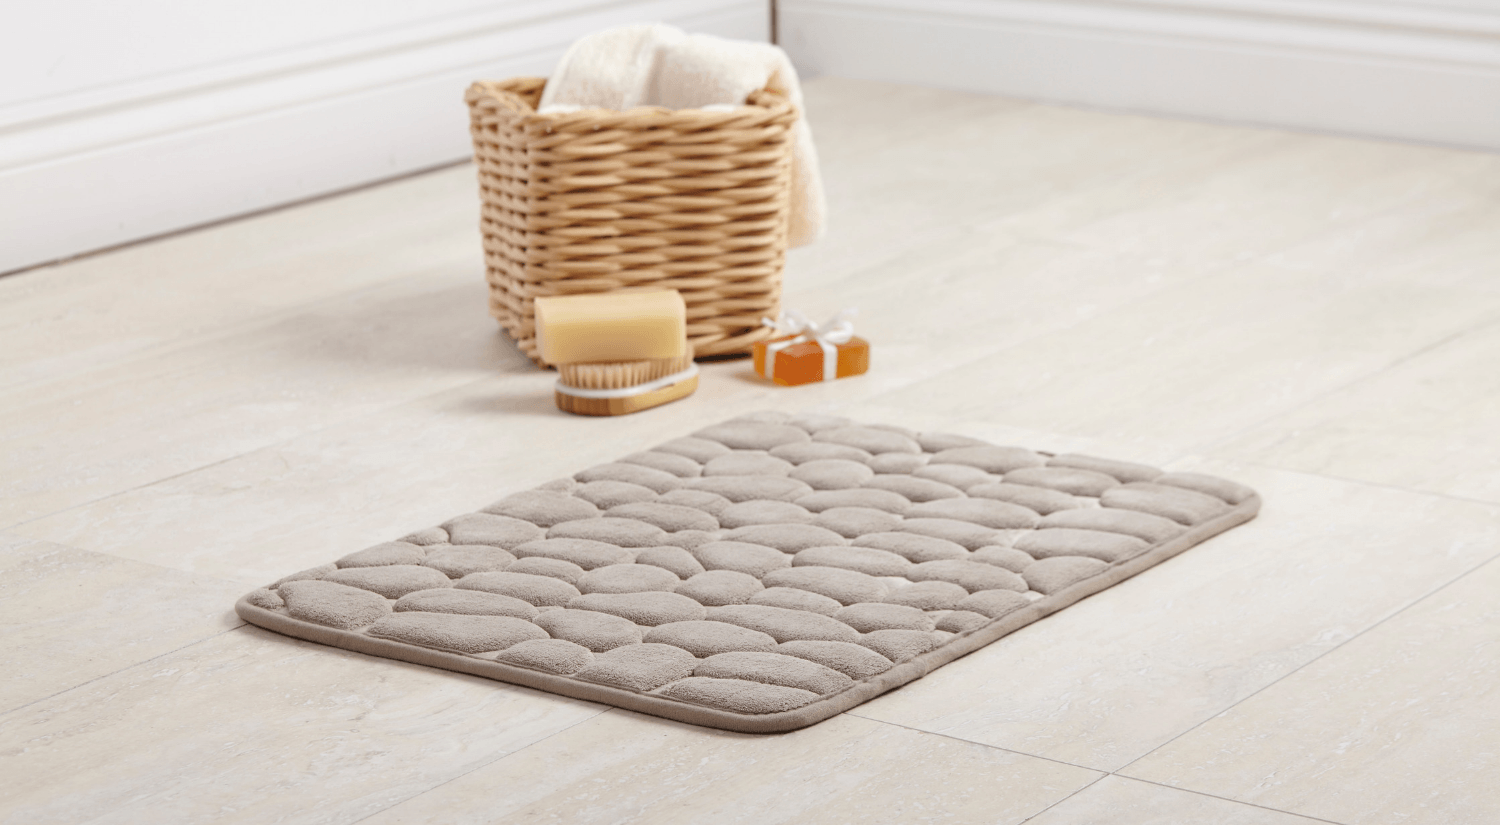 grey bathmat with stone design and wooden basket filled with bath accessories